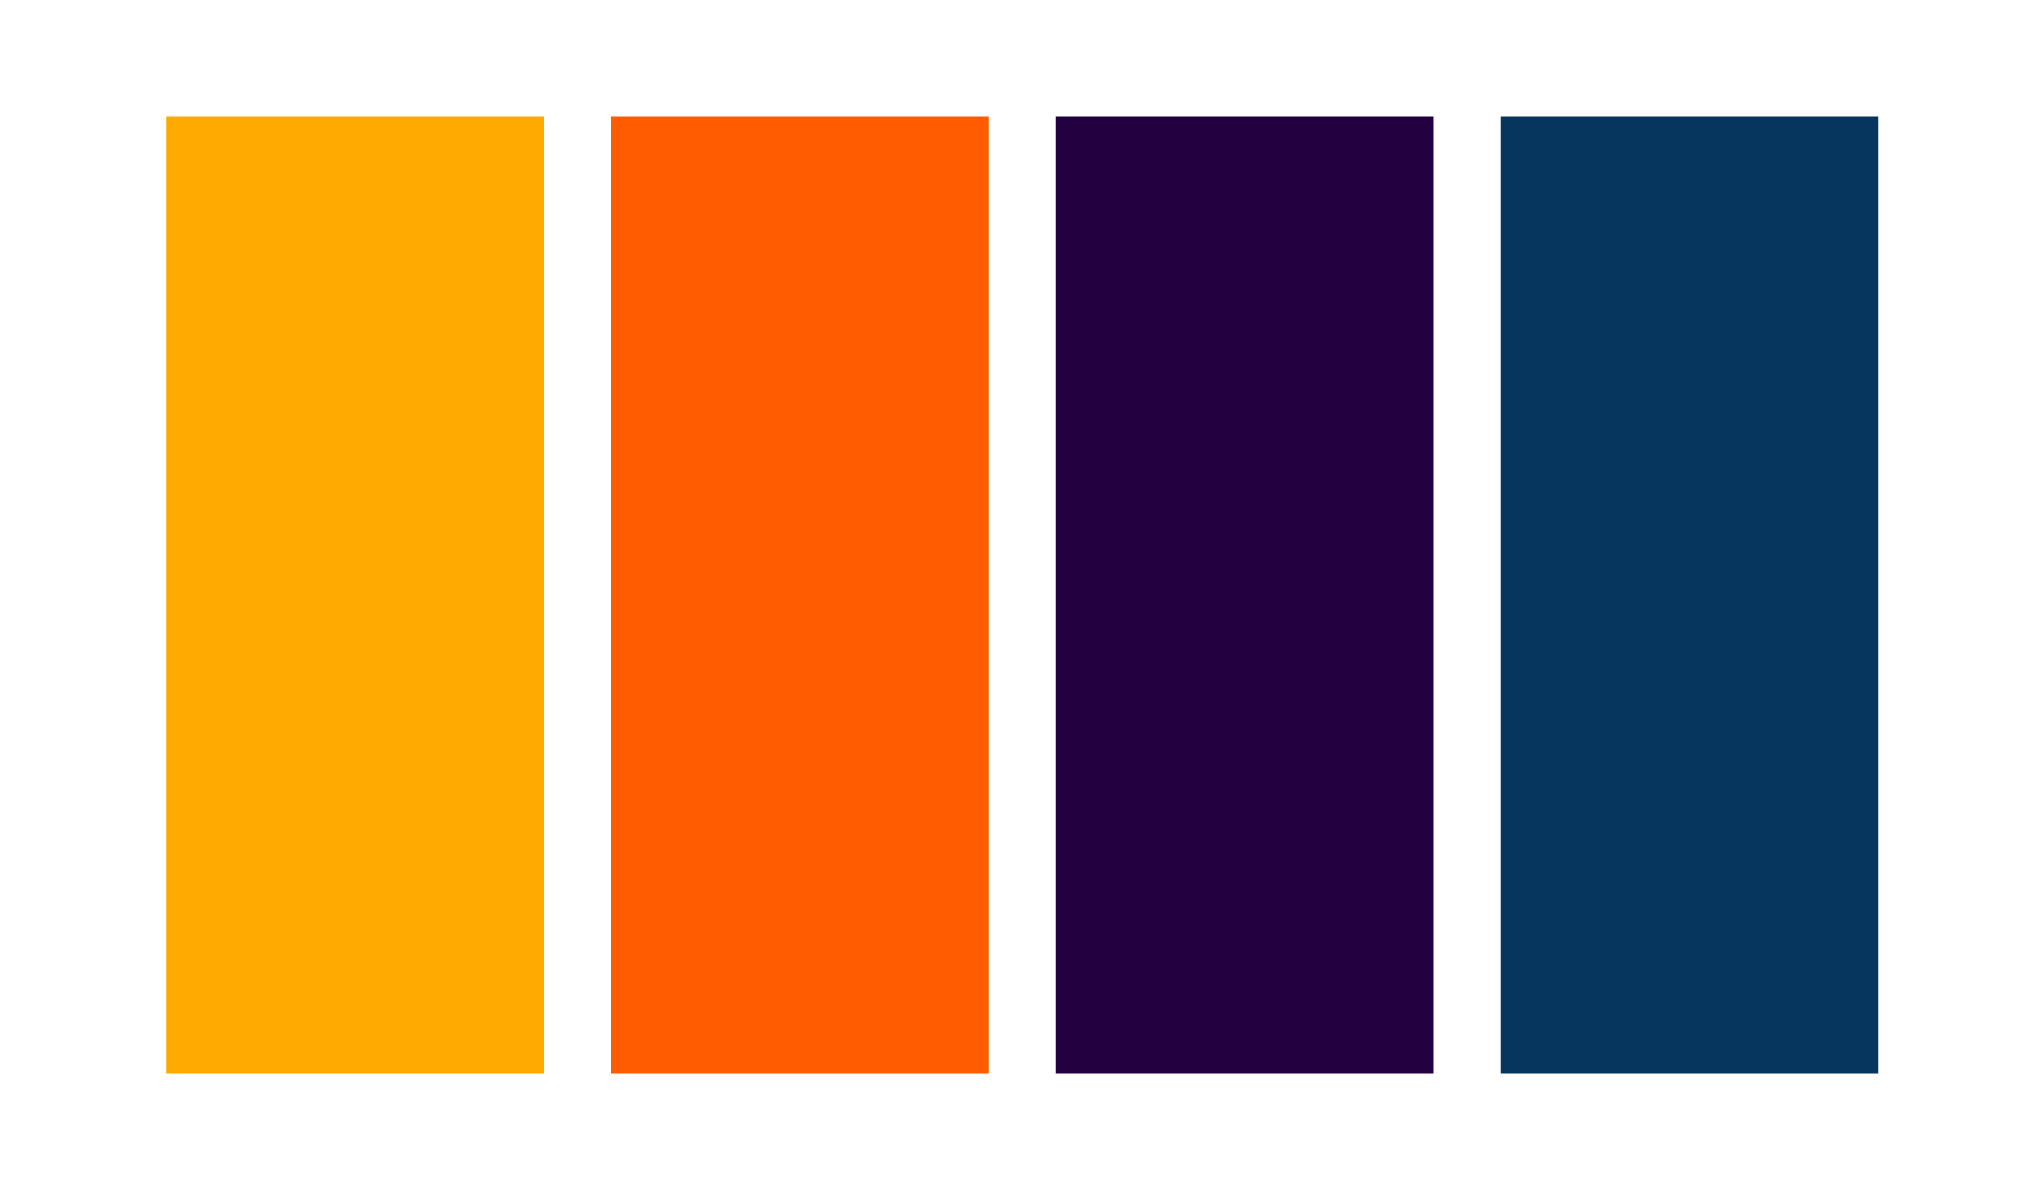 Color Palette - We began our design process with a collection of bold, complementary colors.Featuring deep yellow and orange in the logo to evoke the warmth of freshly baked bagels, we added contrast with cool, complementary violet and navy for depth and a modern vibe.